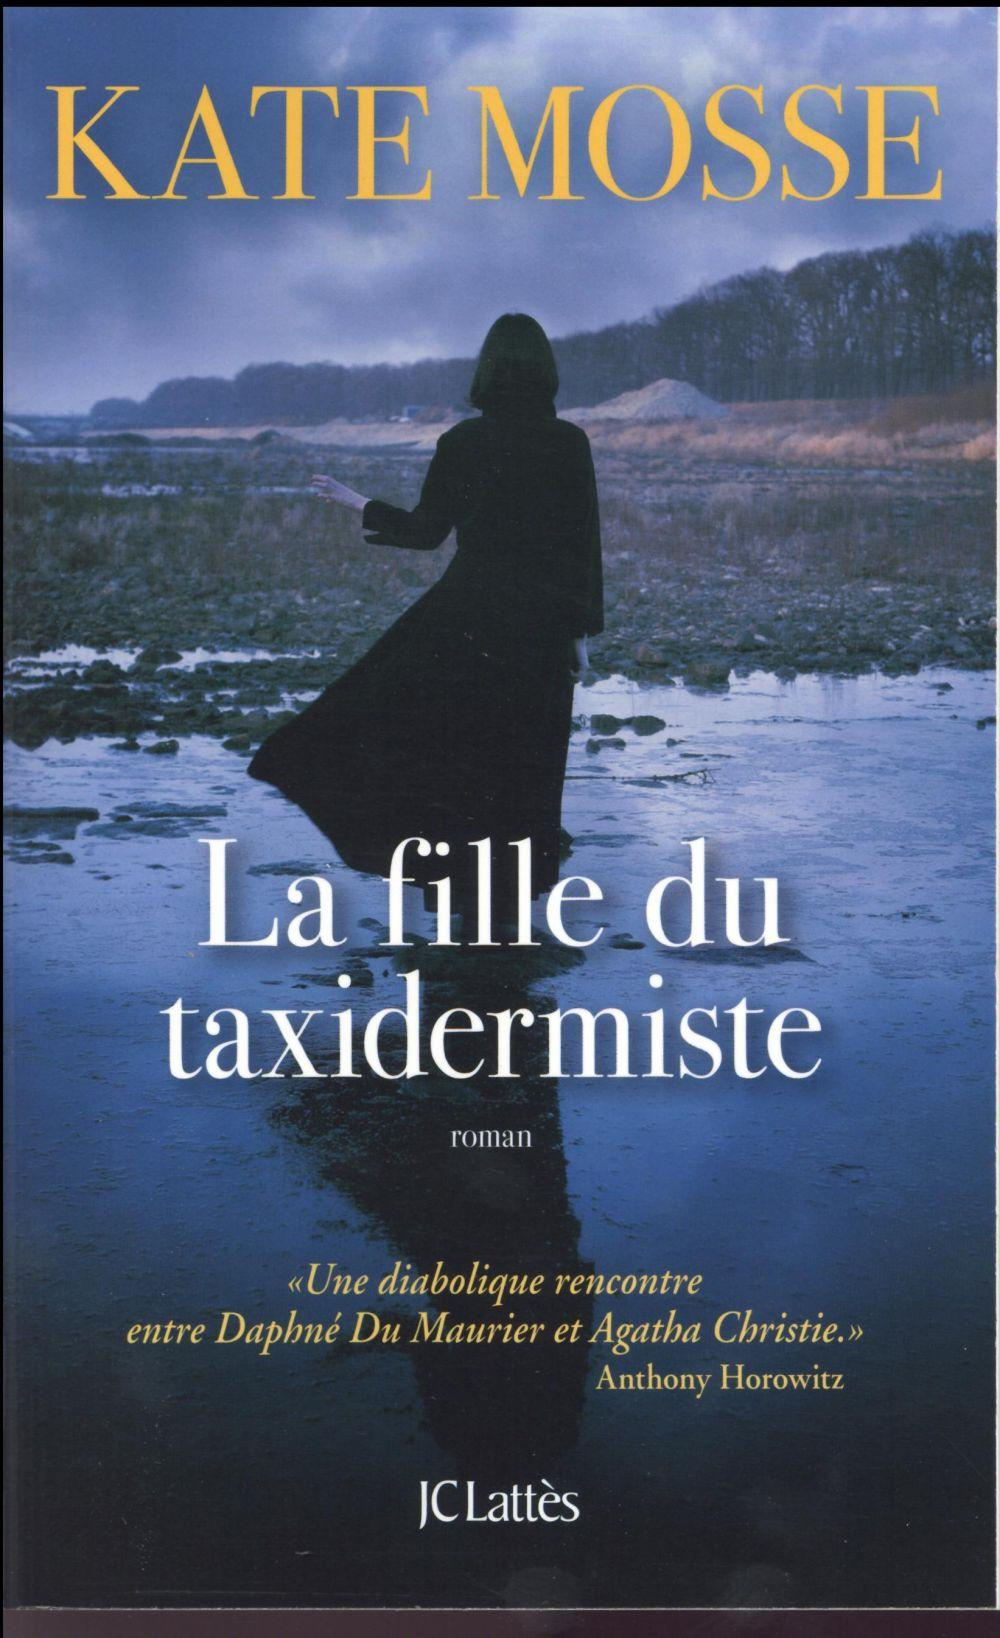 La fille du taxidermiste  - Kate Mosse